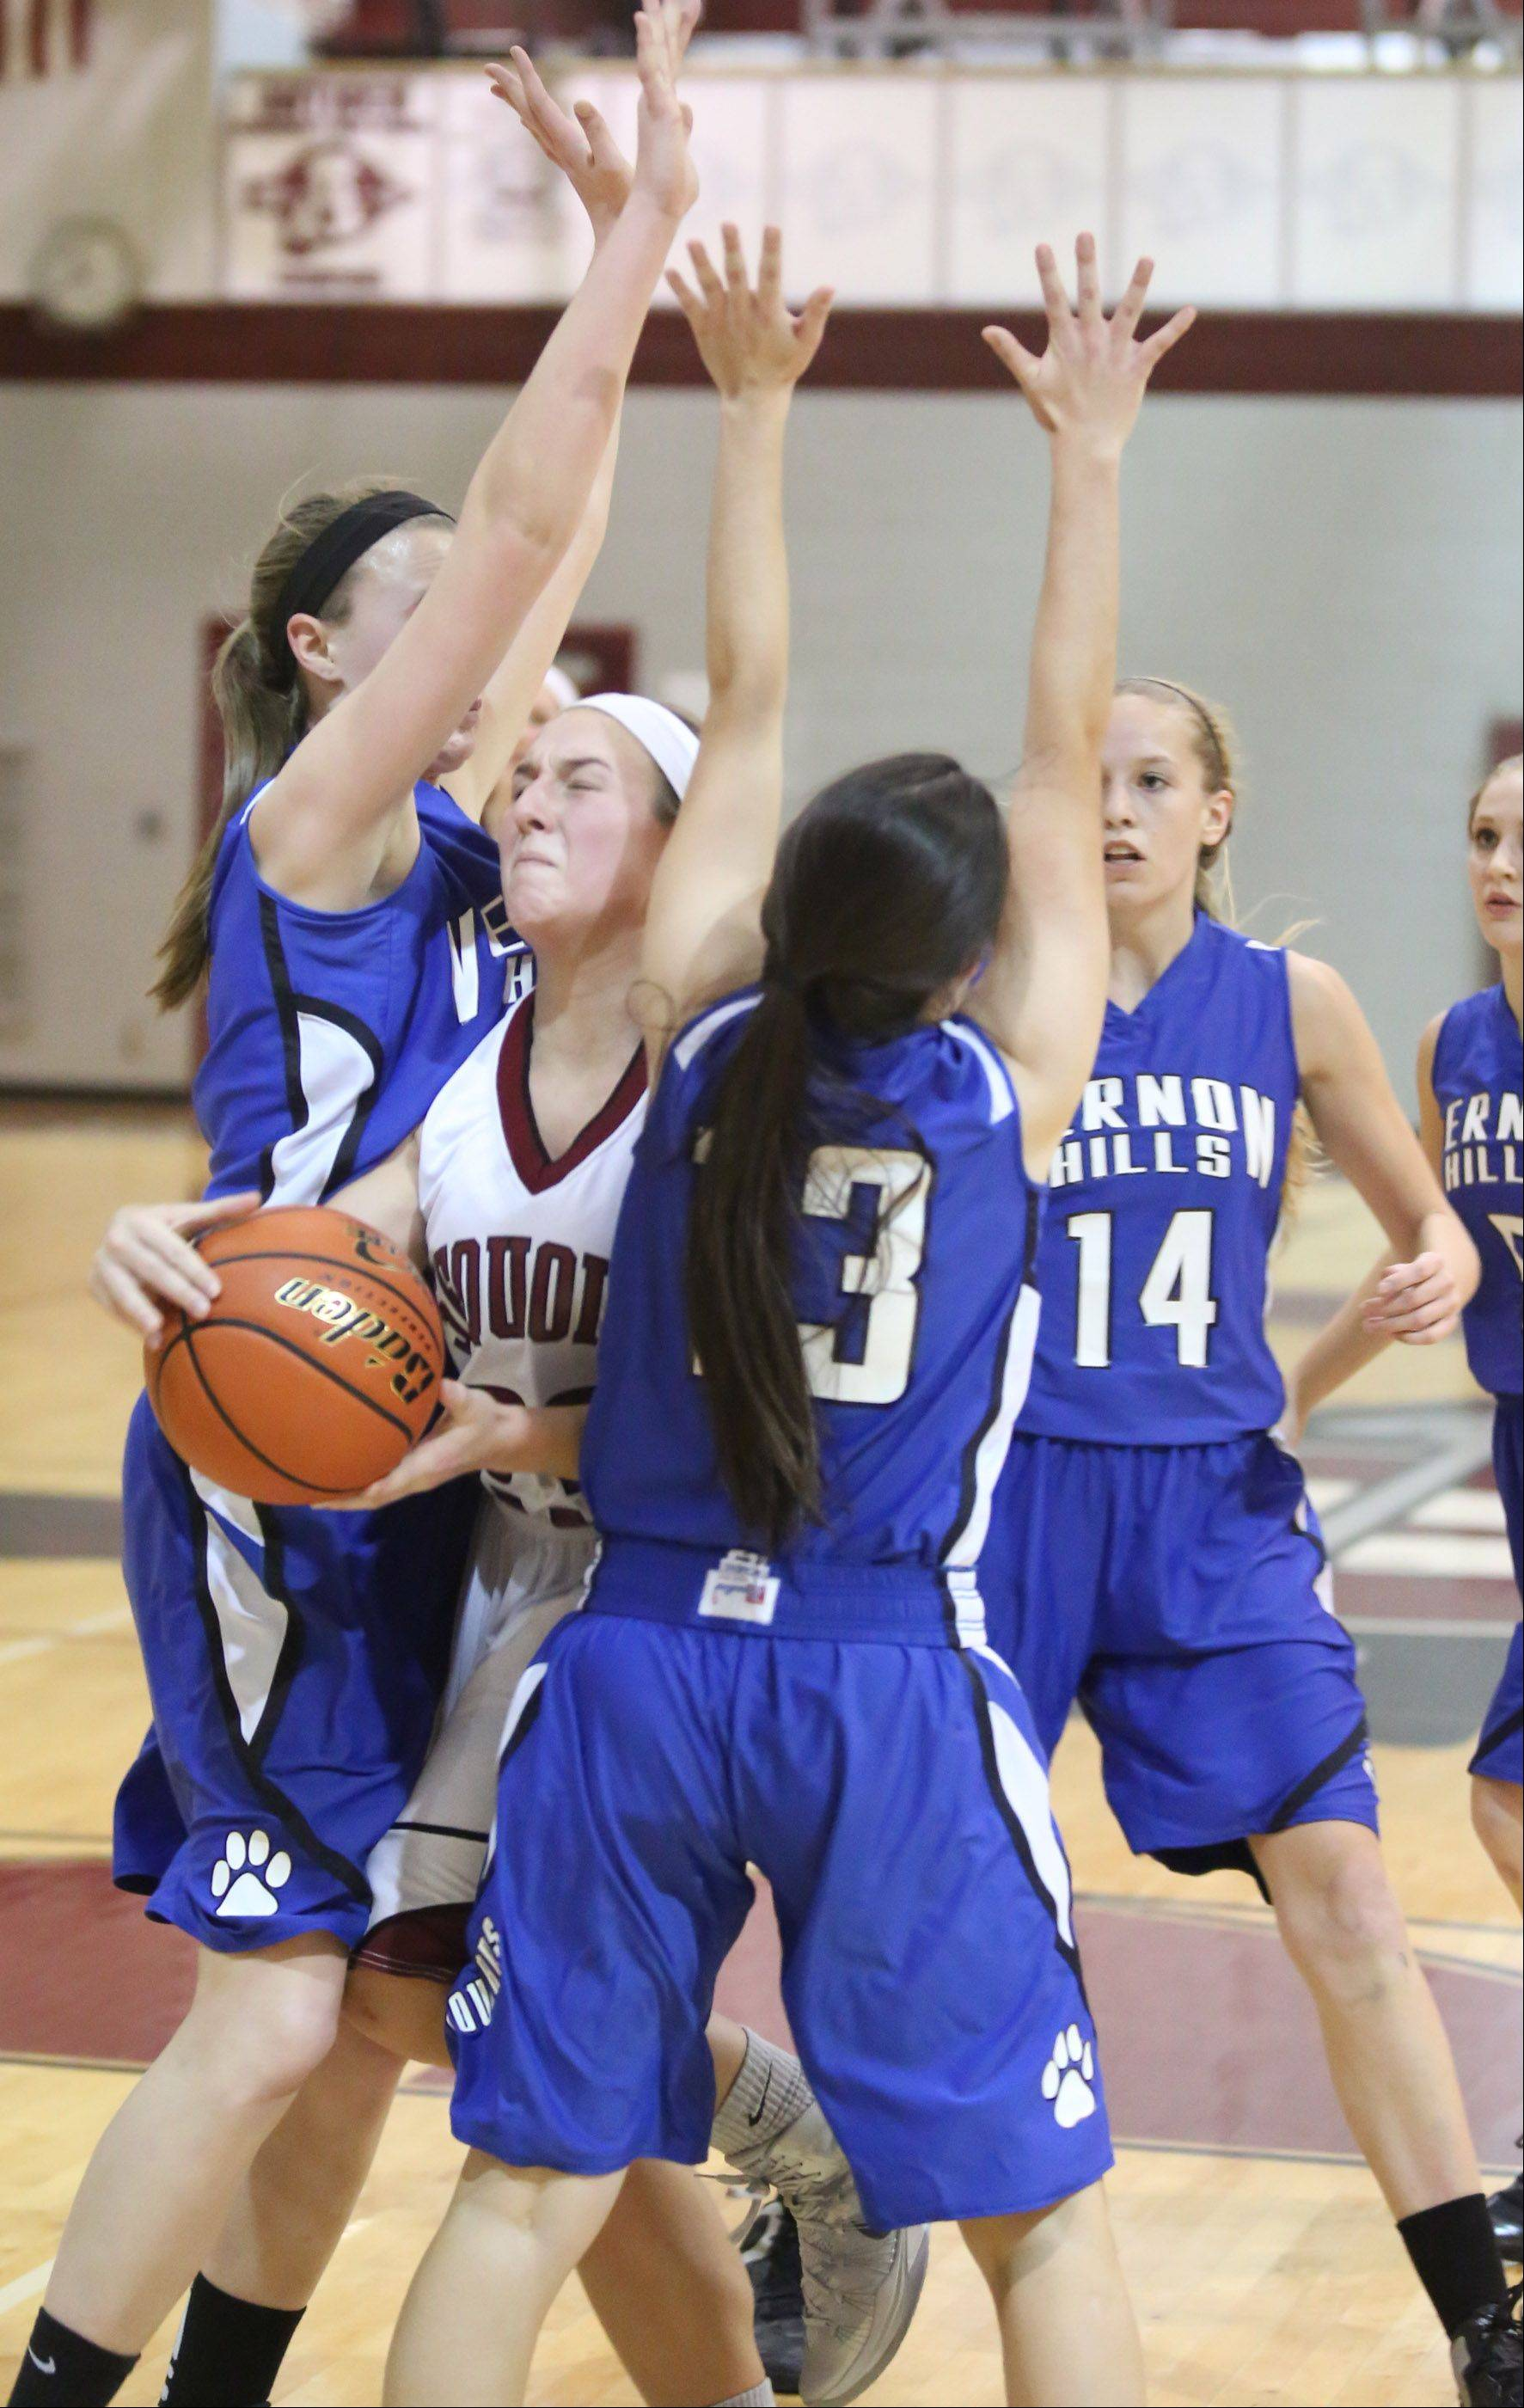 Images from the Antioch vs. Vernon Hills girls basketball game on Friday, Dec. 6.